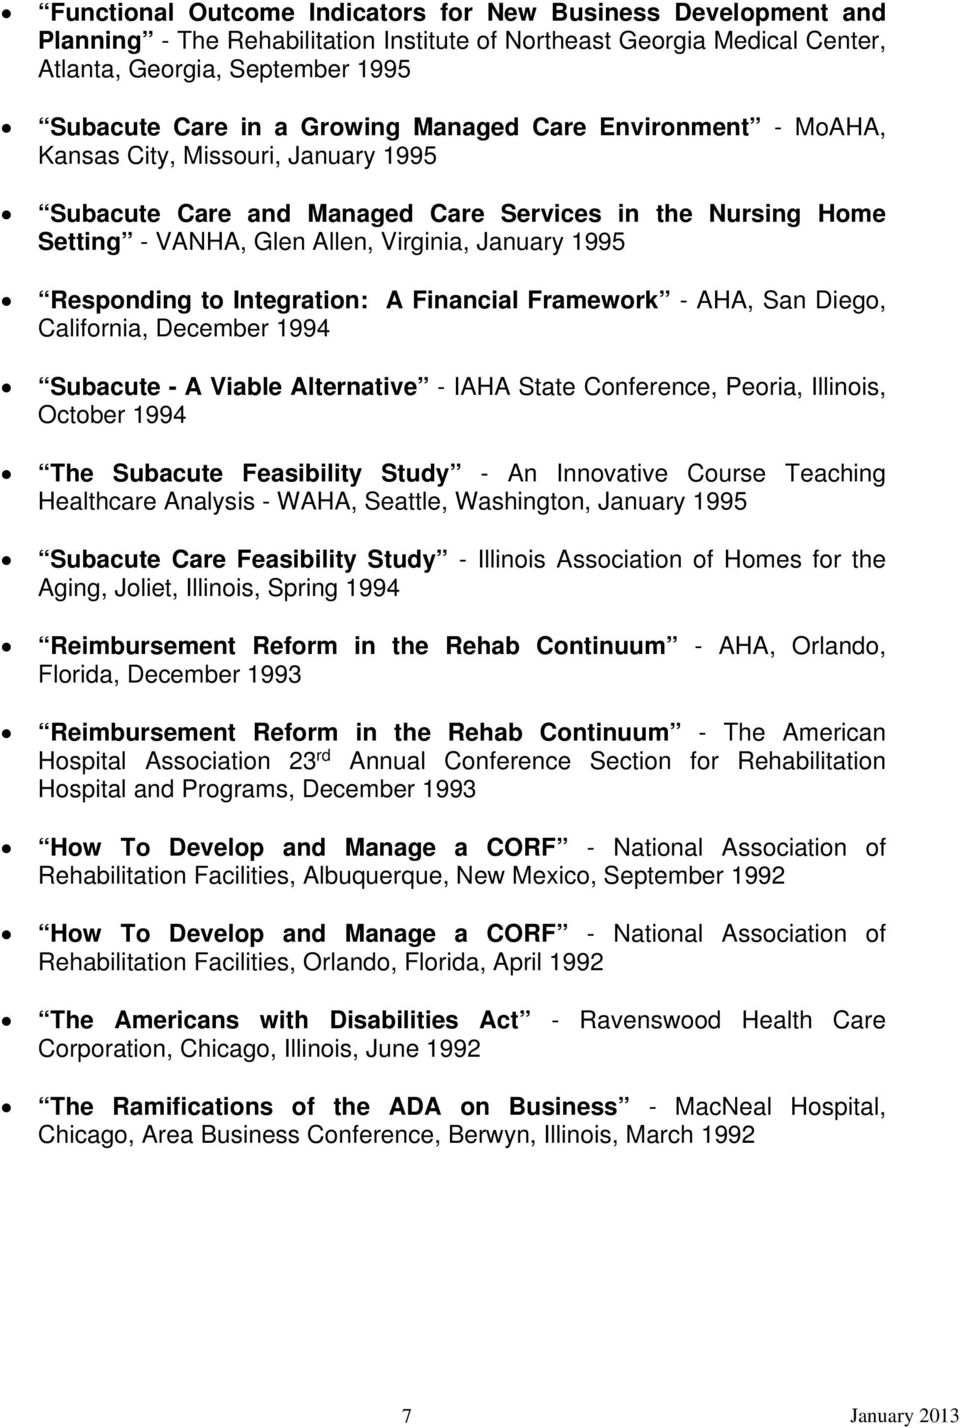 Integration: A Financial Framework - AHA, San Diego, California, December 1994 Subacute - A Viable Alternative - IAHA State Conference, Peoria, Illinois, October 1994 The Subacute Feasibility Study -